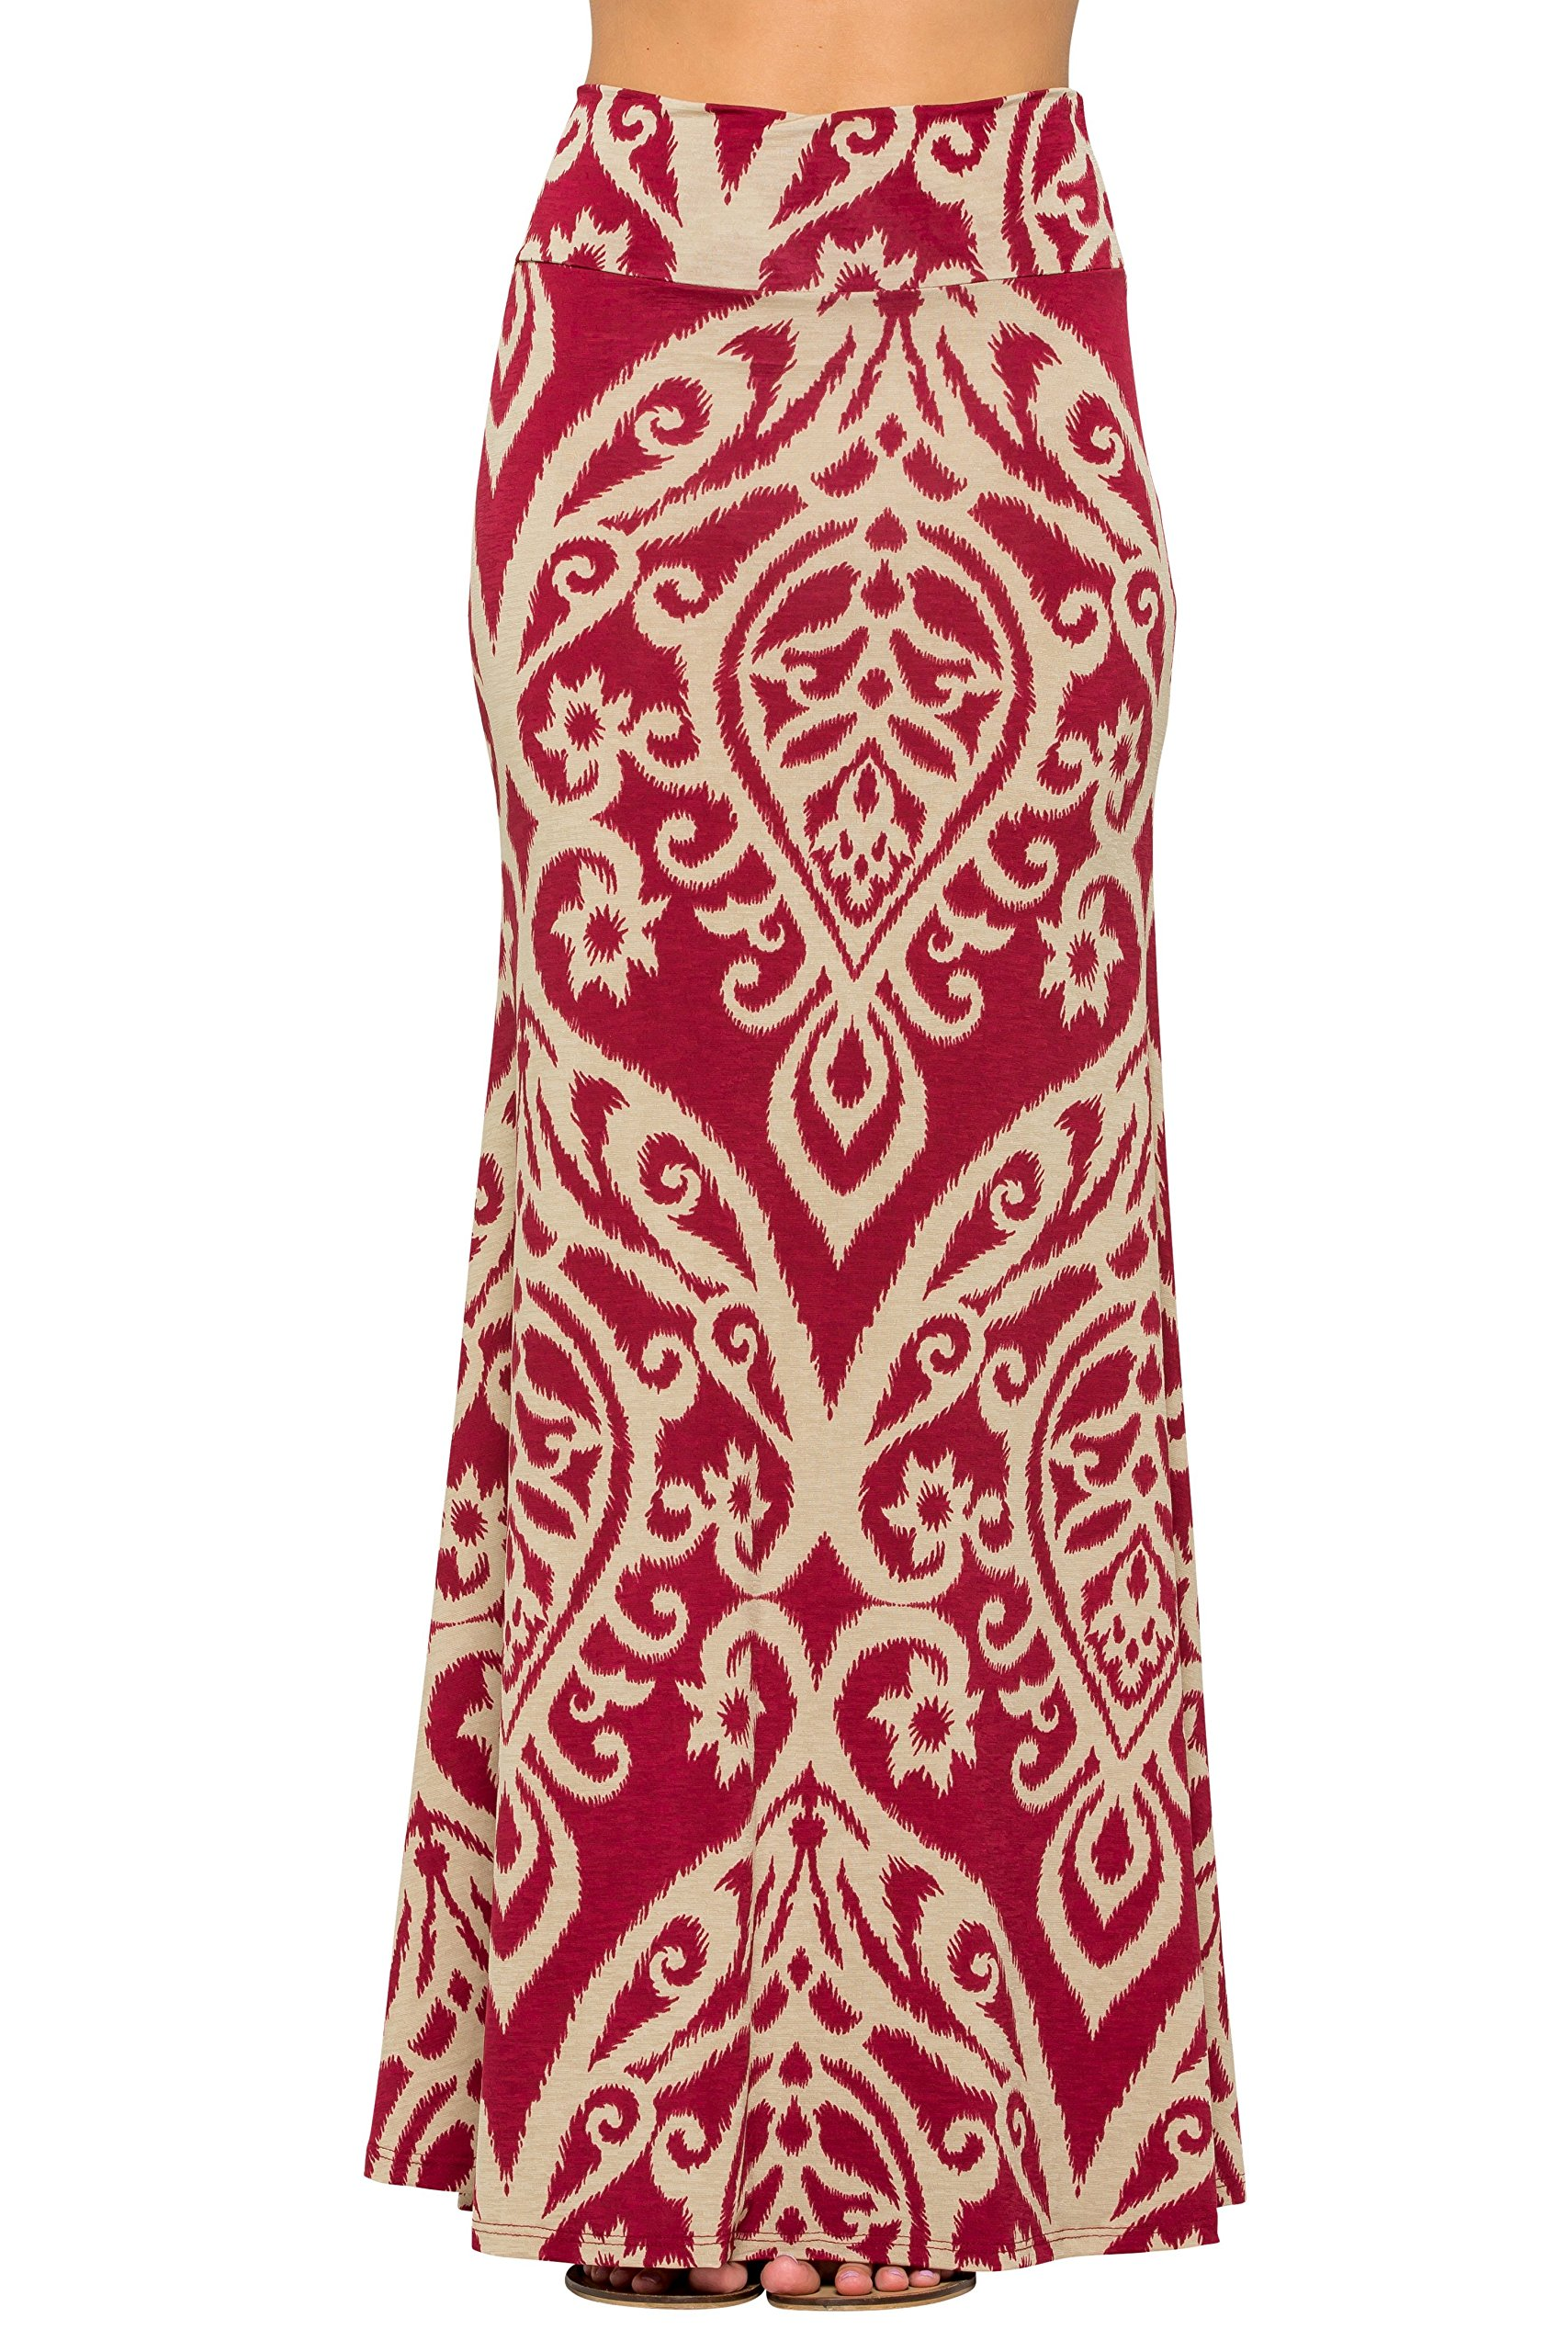 Junky Closet Women's Foldover High Waisted Floor Length Maxi Skirt (Medium, Damask 222 Burgundy Taupe)